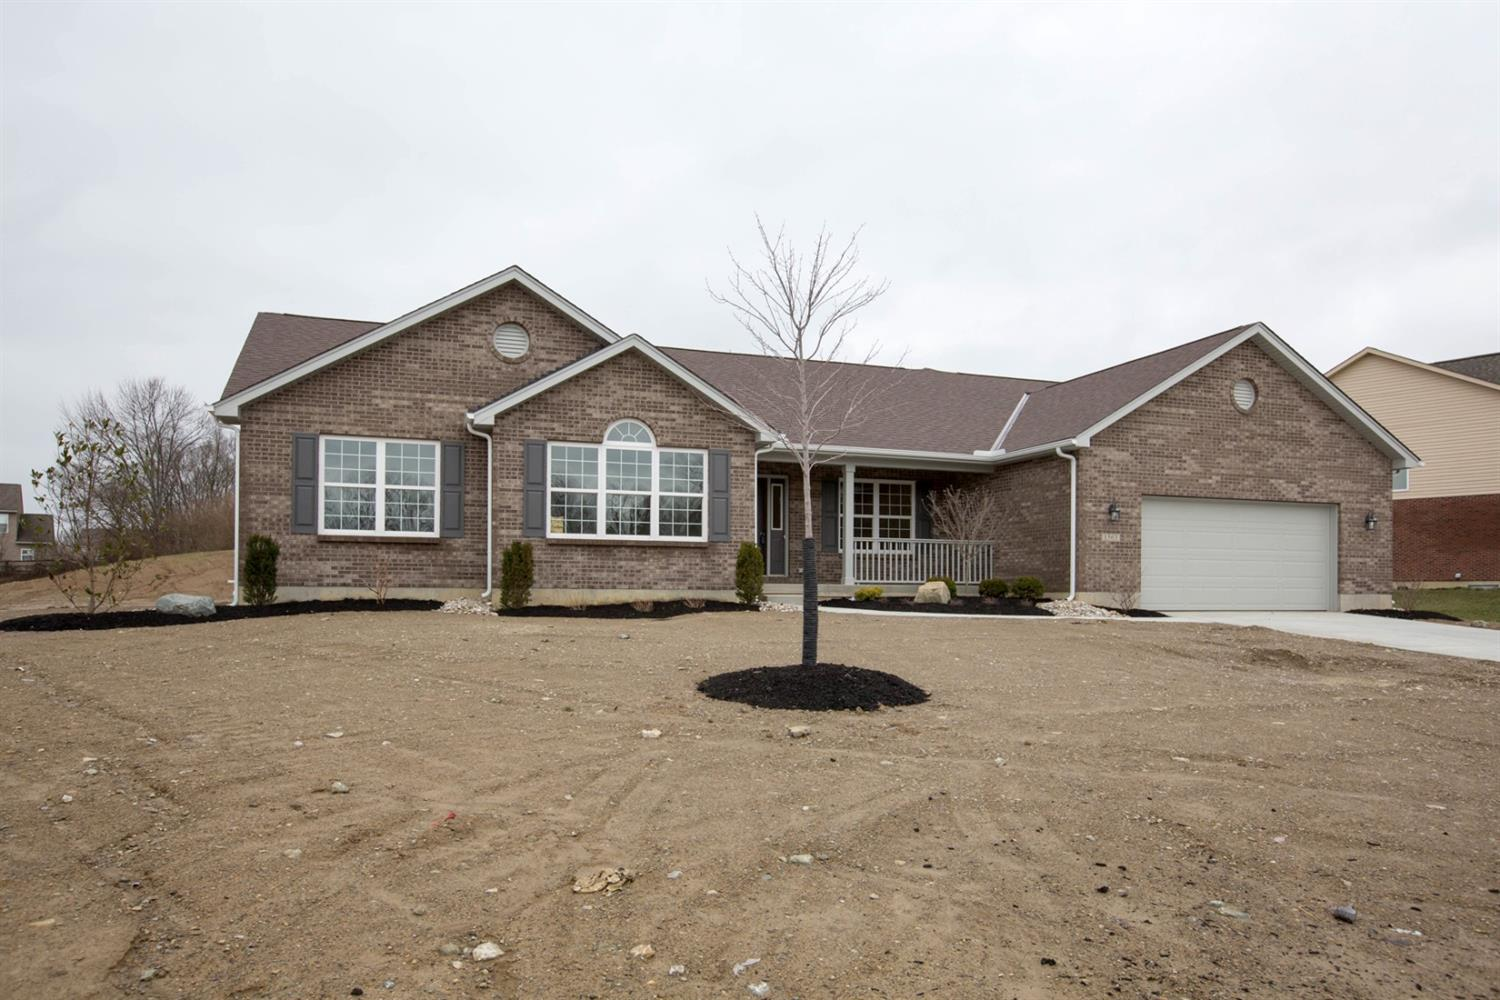 Property for sale at 1563 Meadow View Lane, Turtle Creek Twp,  Ohio 45036